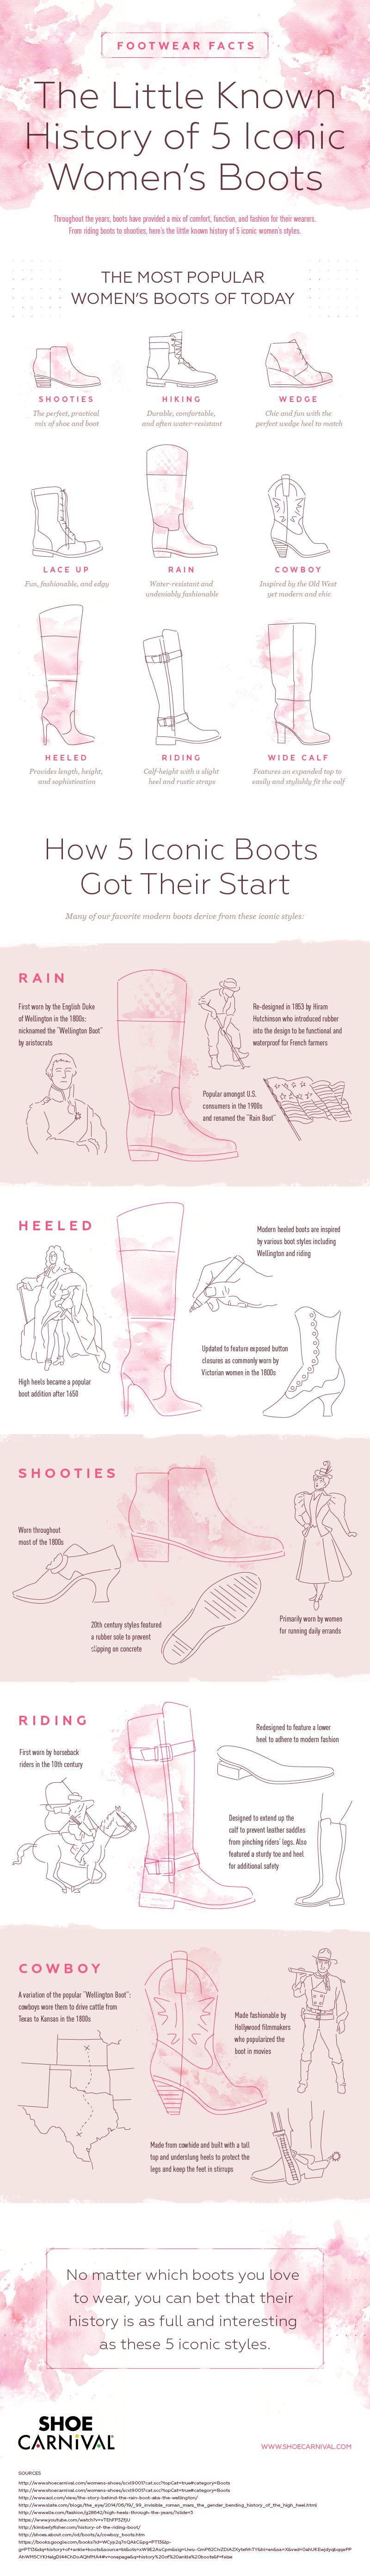 History of 5 Iconic Women's Boots